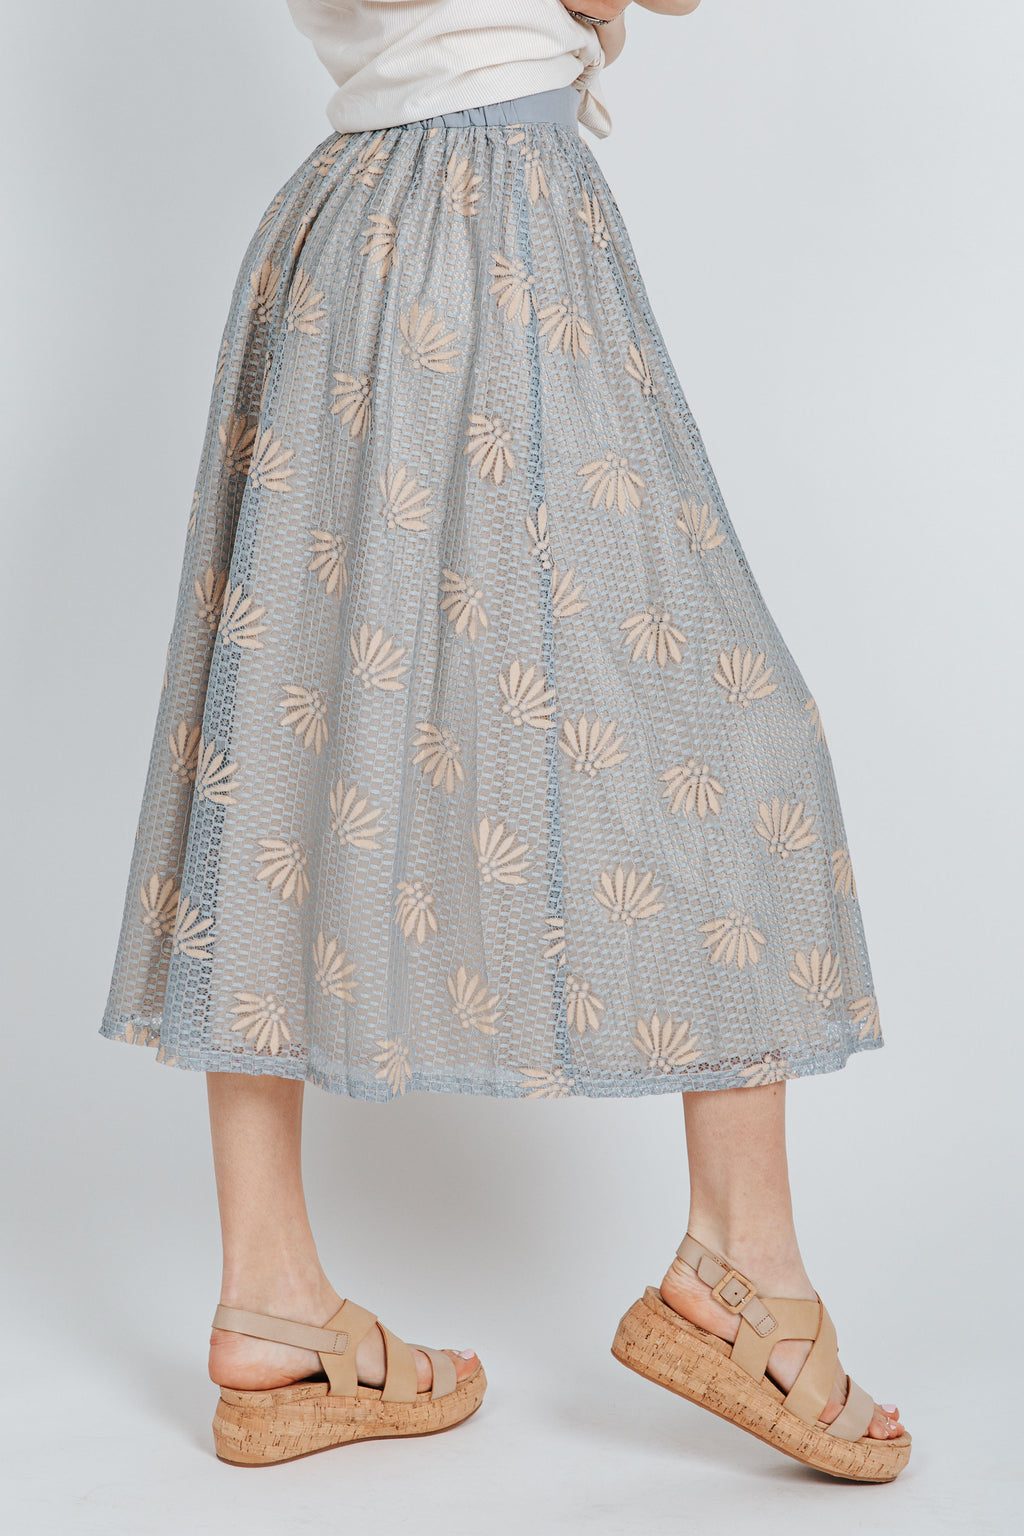 The Alexis Lace Skirt in Dusty Blue, studio shoot; side view